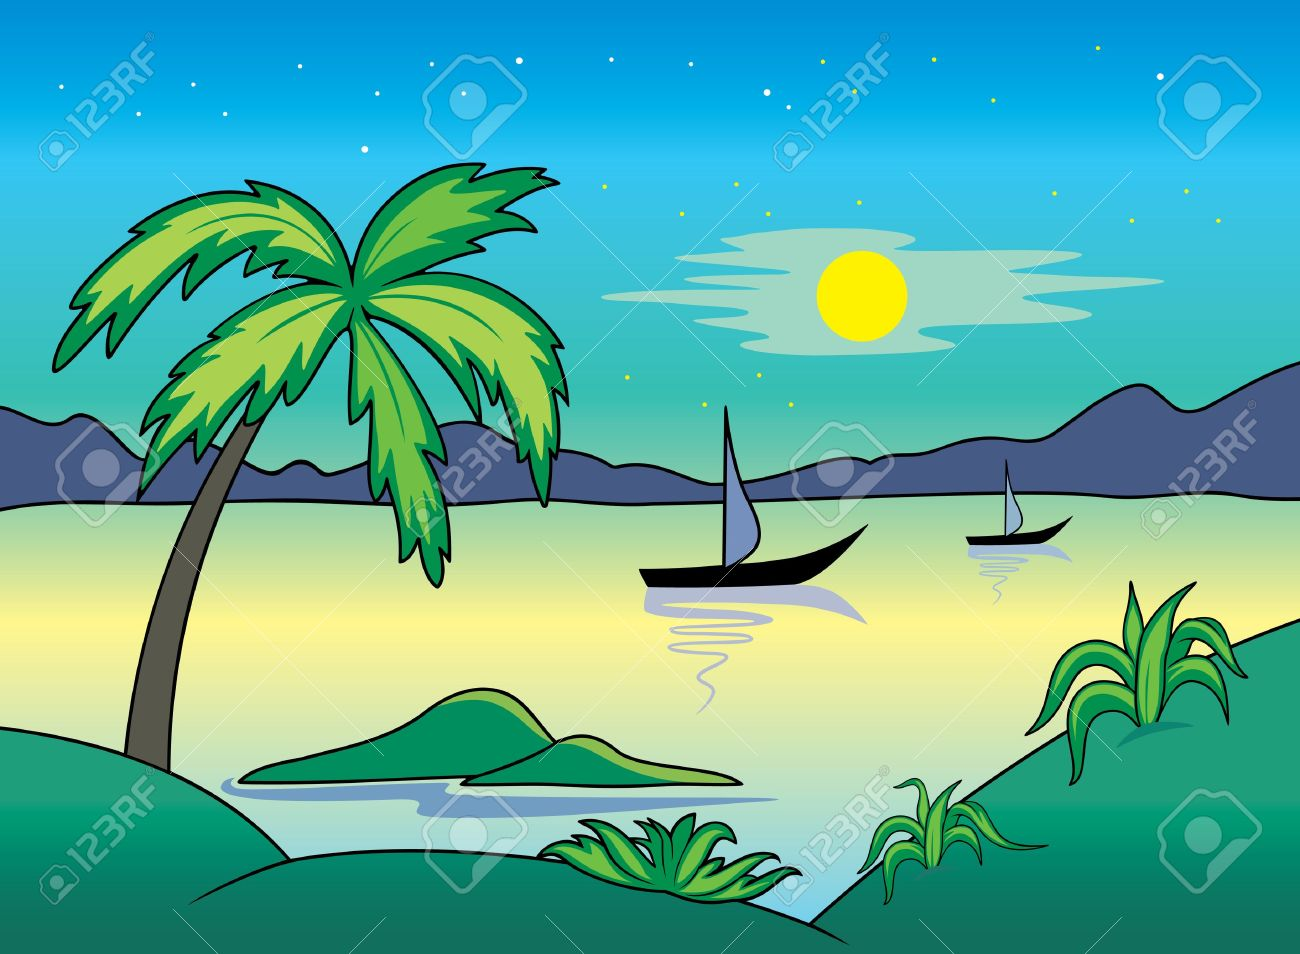 Landscape clipart #17, Download drawings